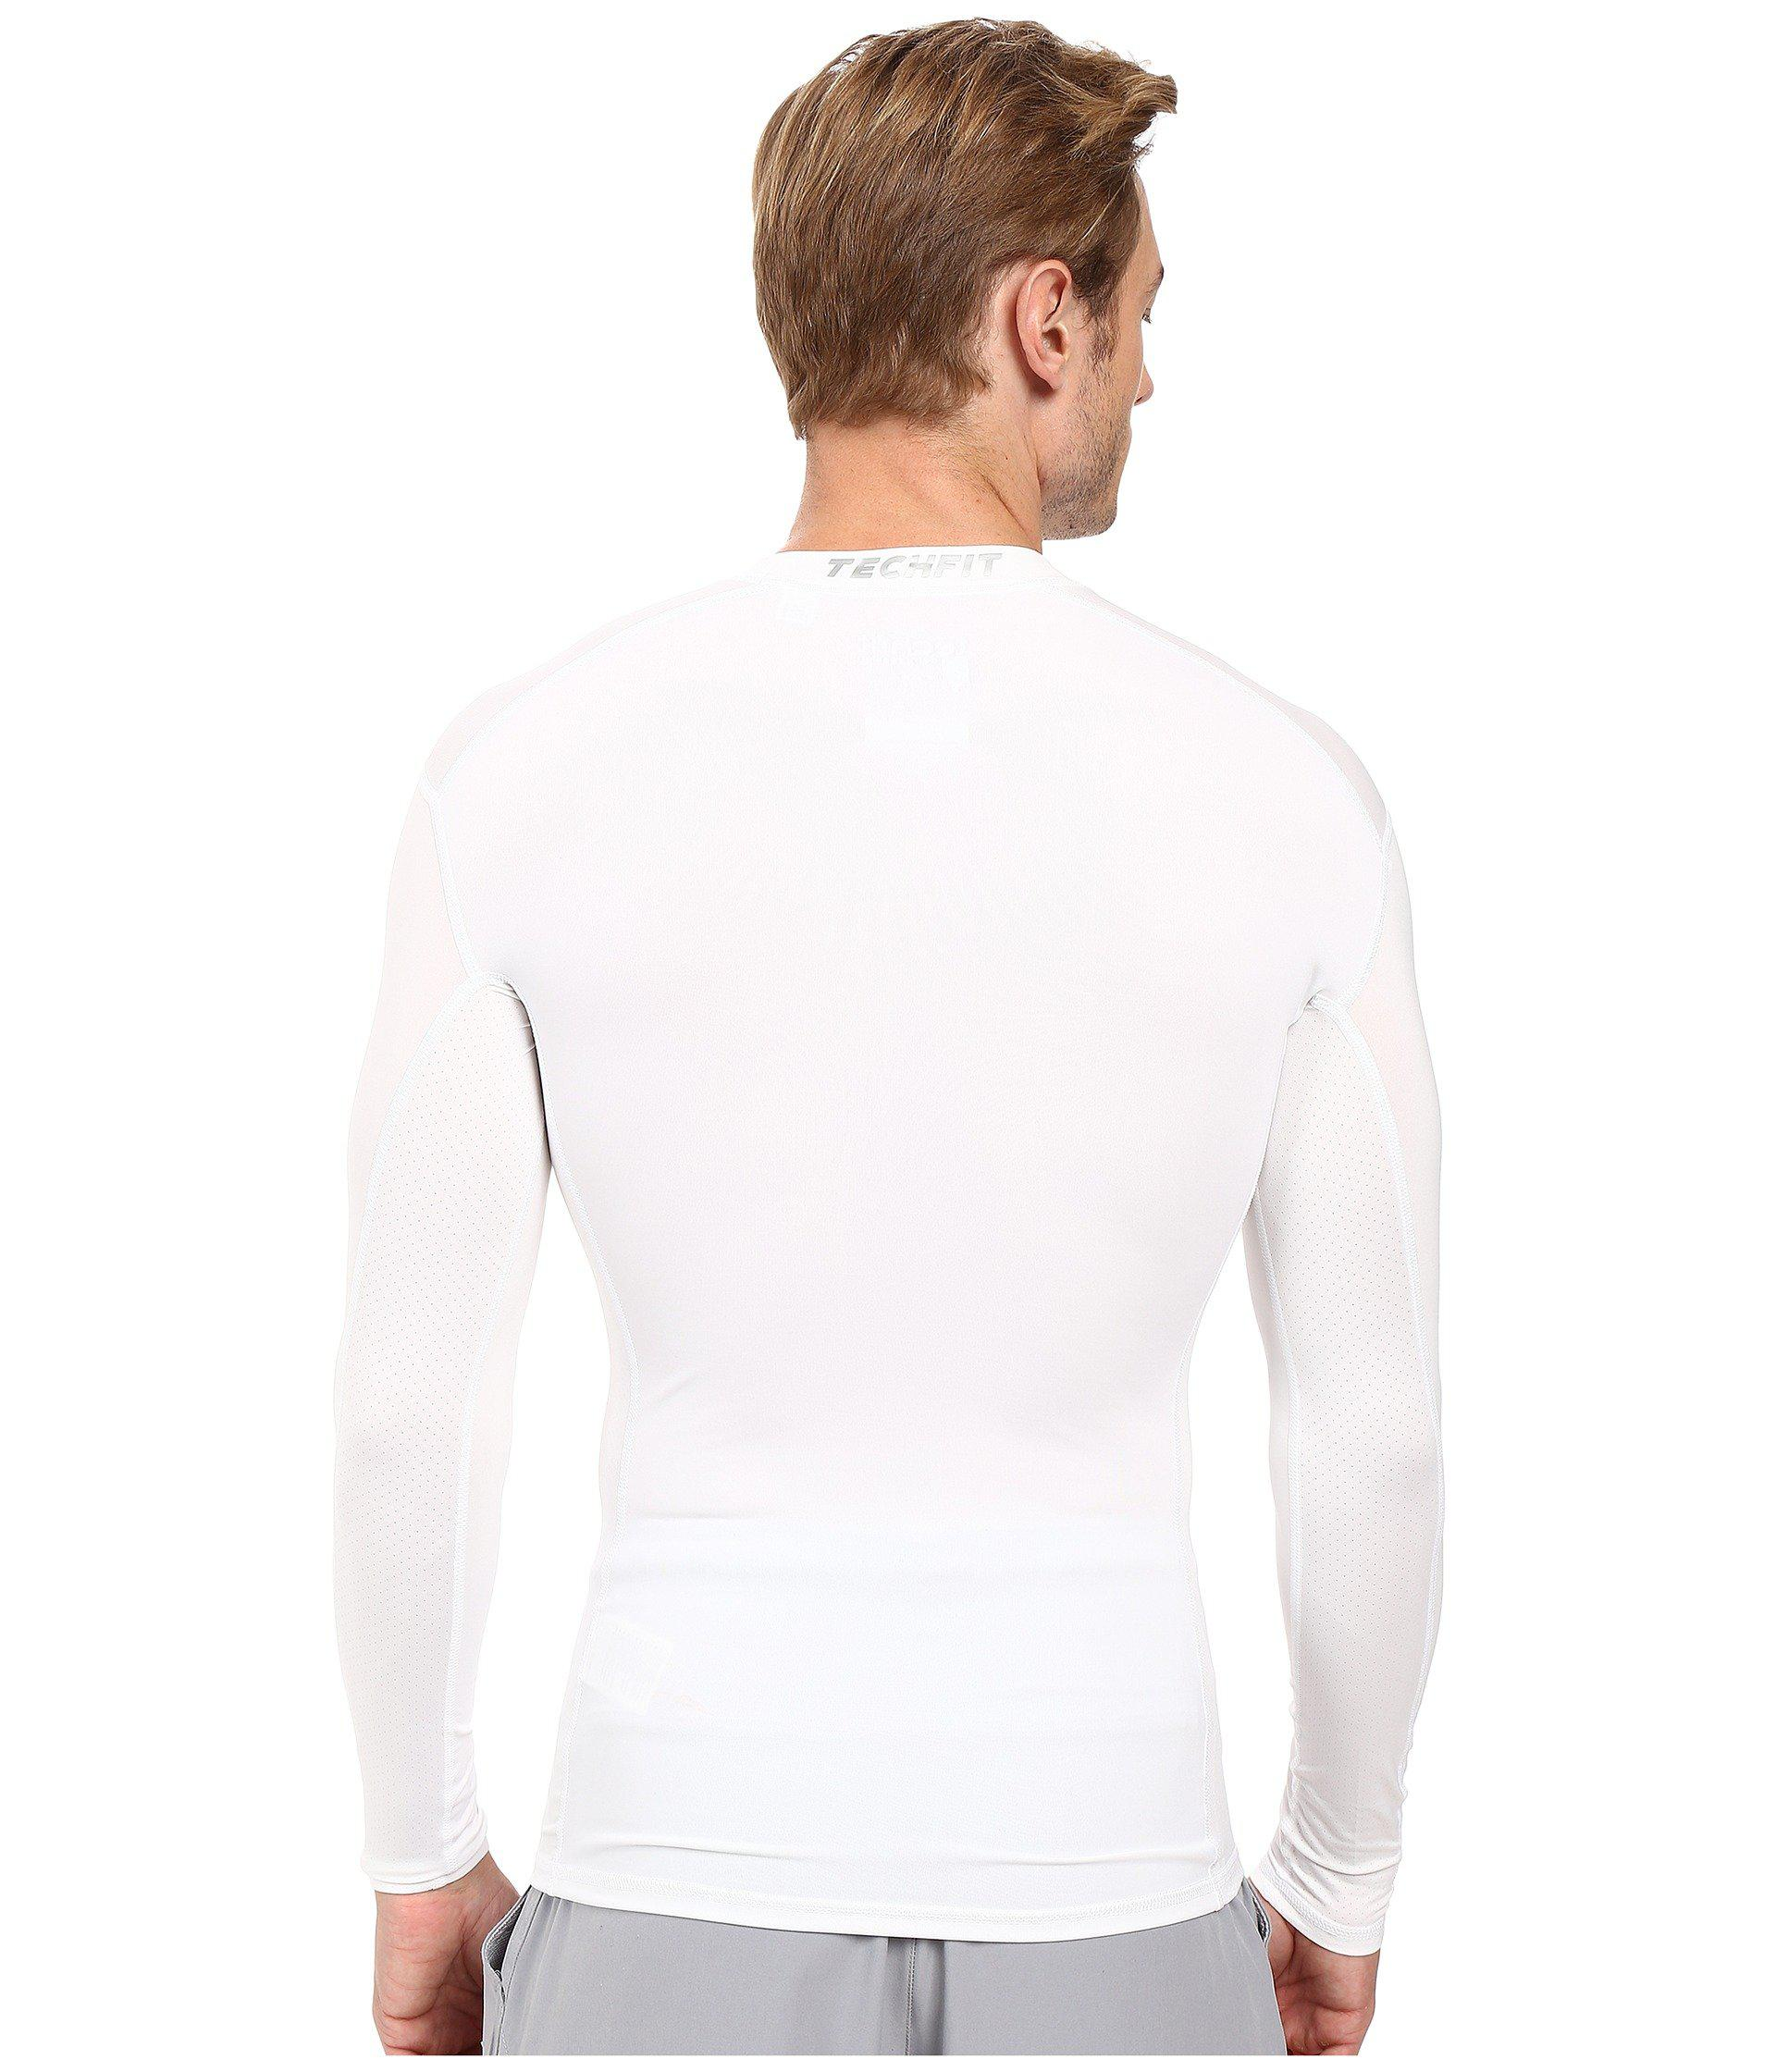 c55635724 adidas Techfit Base Layer Long Sleeve Tee in White for Men - Lyst